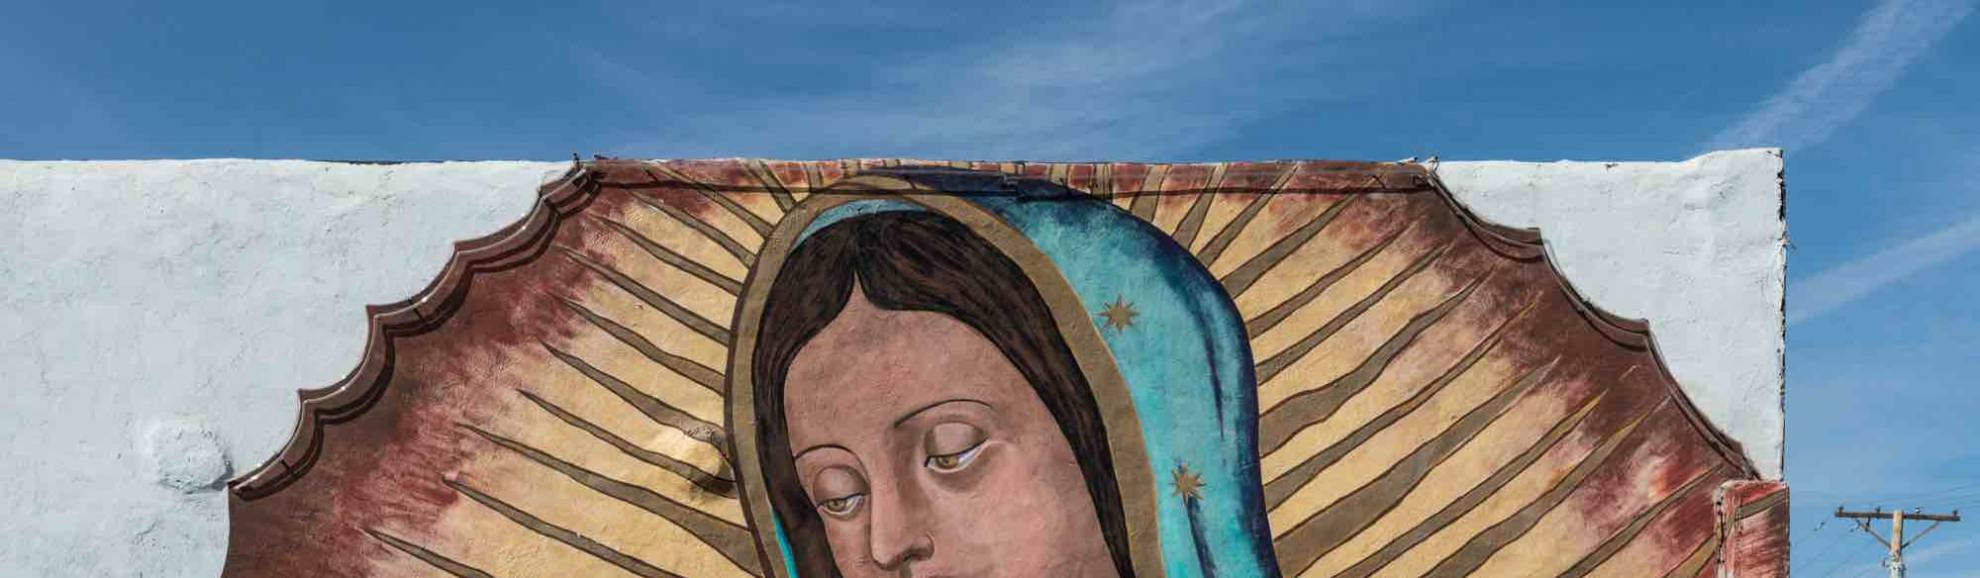 np_Mural across from the San Ysleta Mission, El Paso, Texas_n56rj5_free